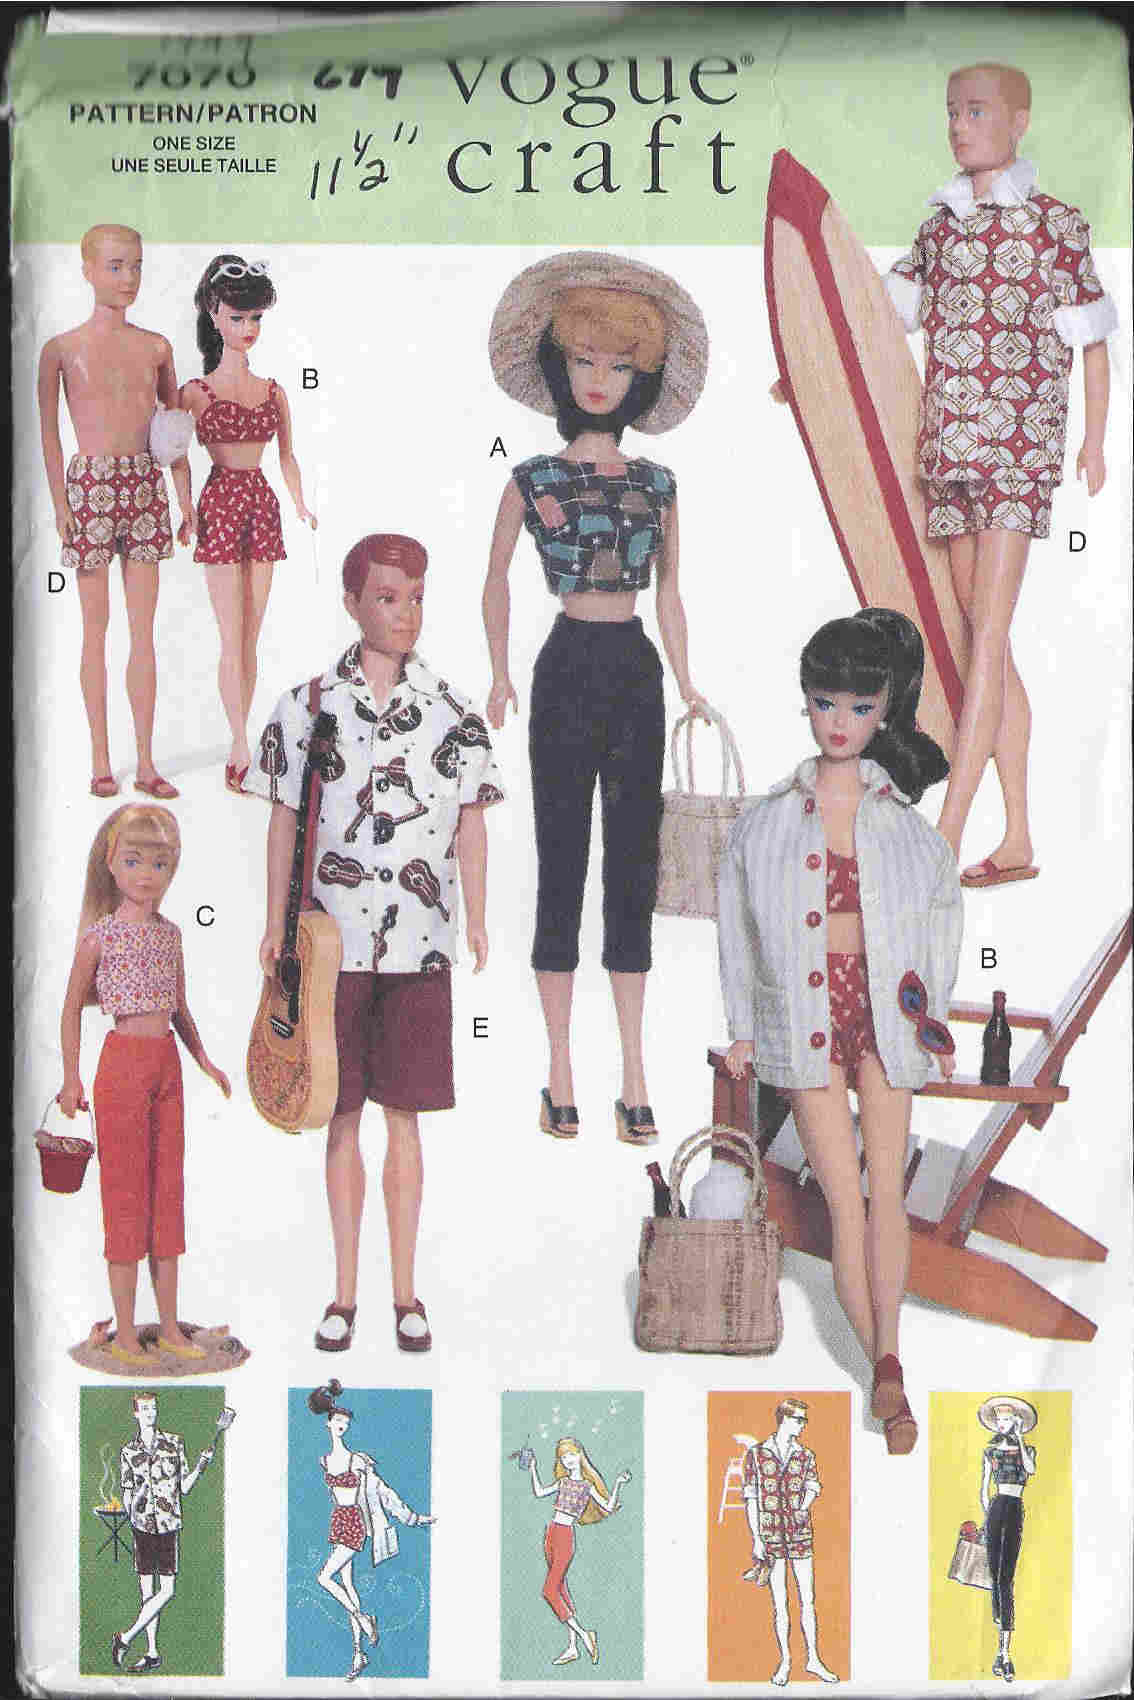 DellaJane Sewing Patterns For Barbie & Other Fashion Dolls